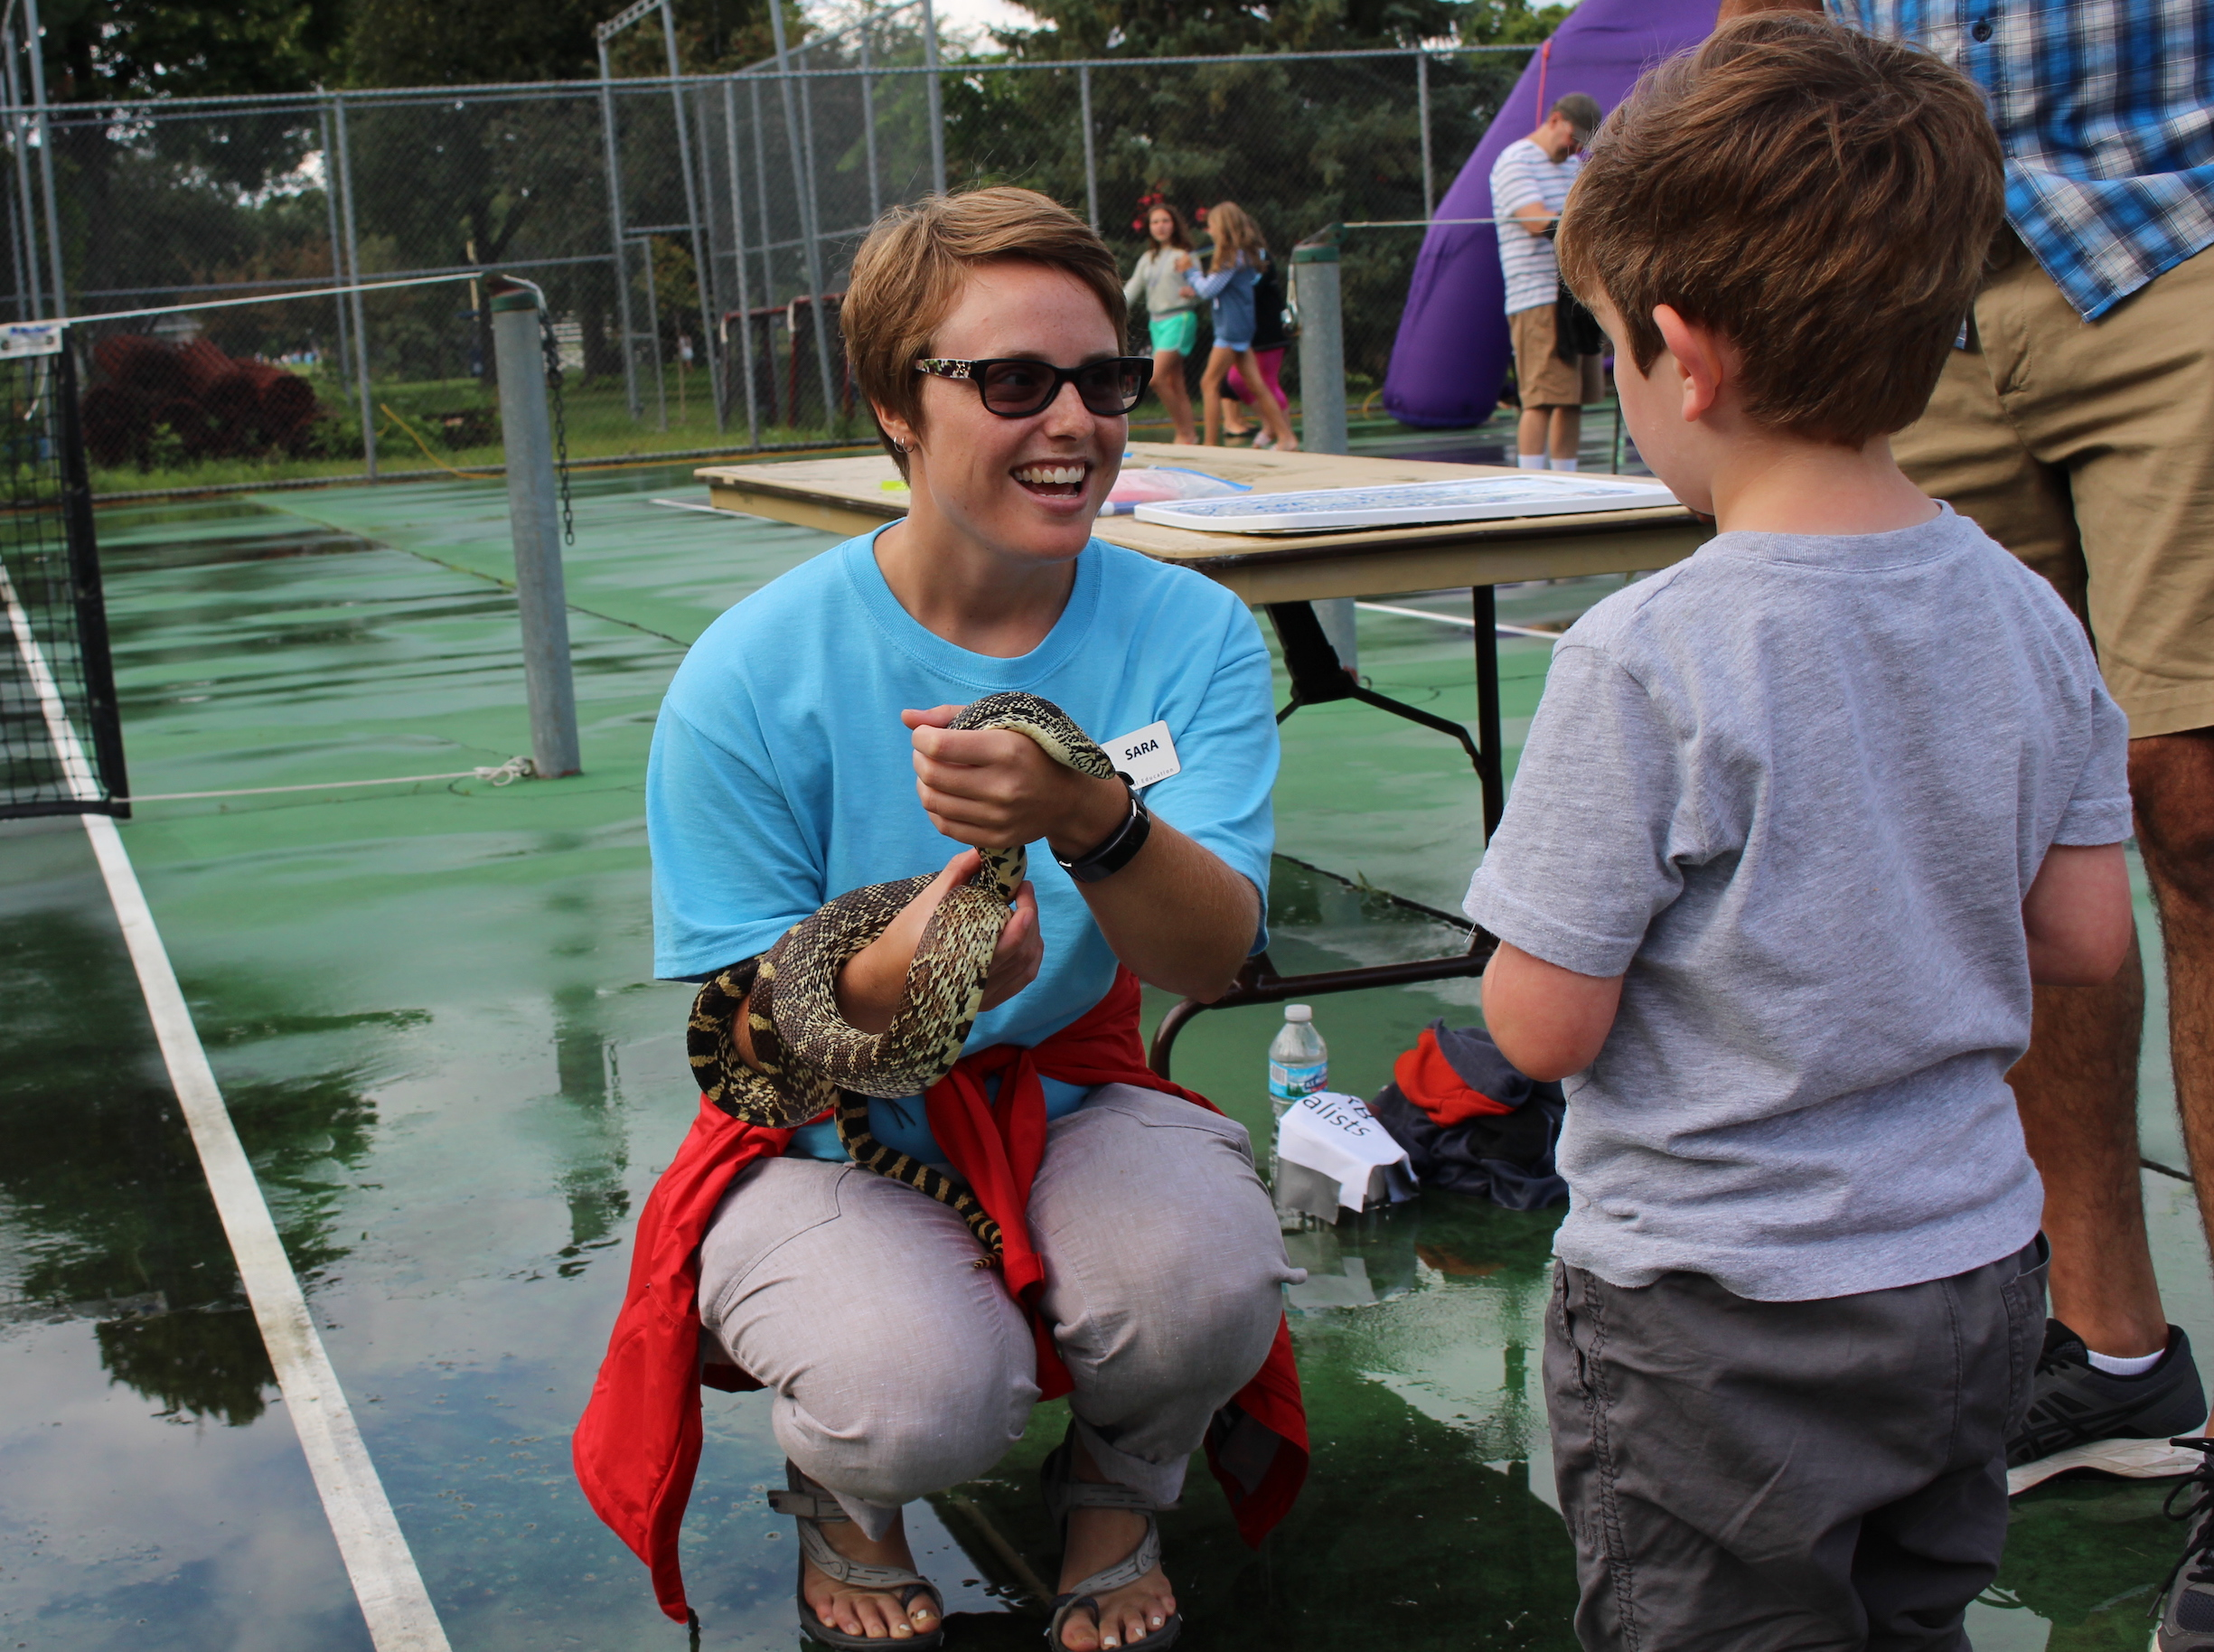 Sara Swenson with the Minneapolis Park and Recreation Board's Neighborhood Naturalist program brought a snake that kids could pet.